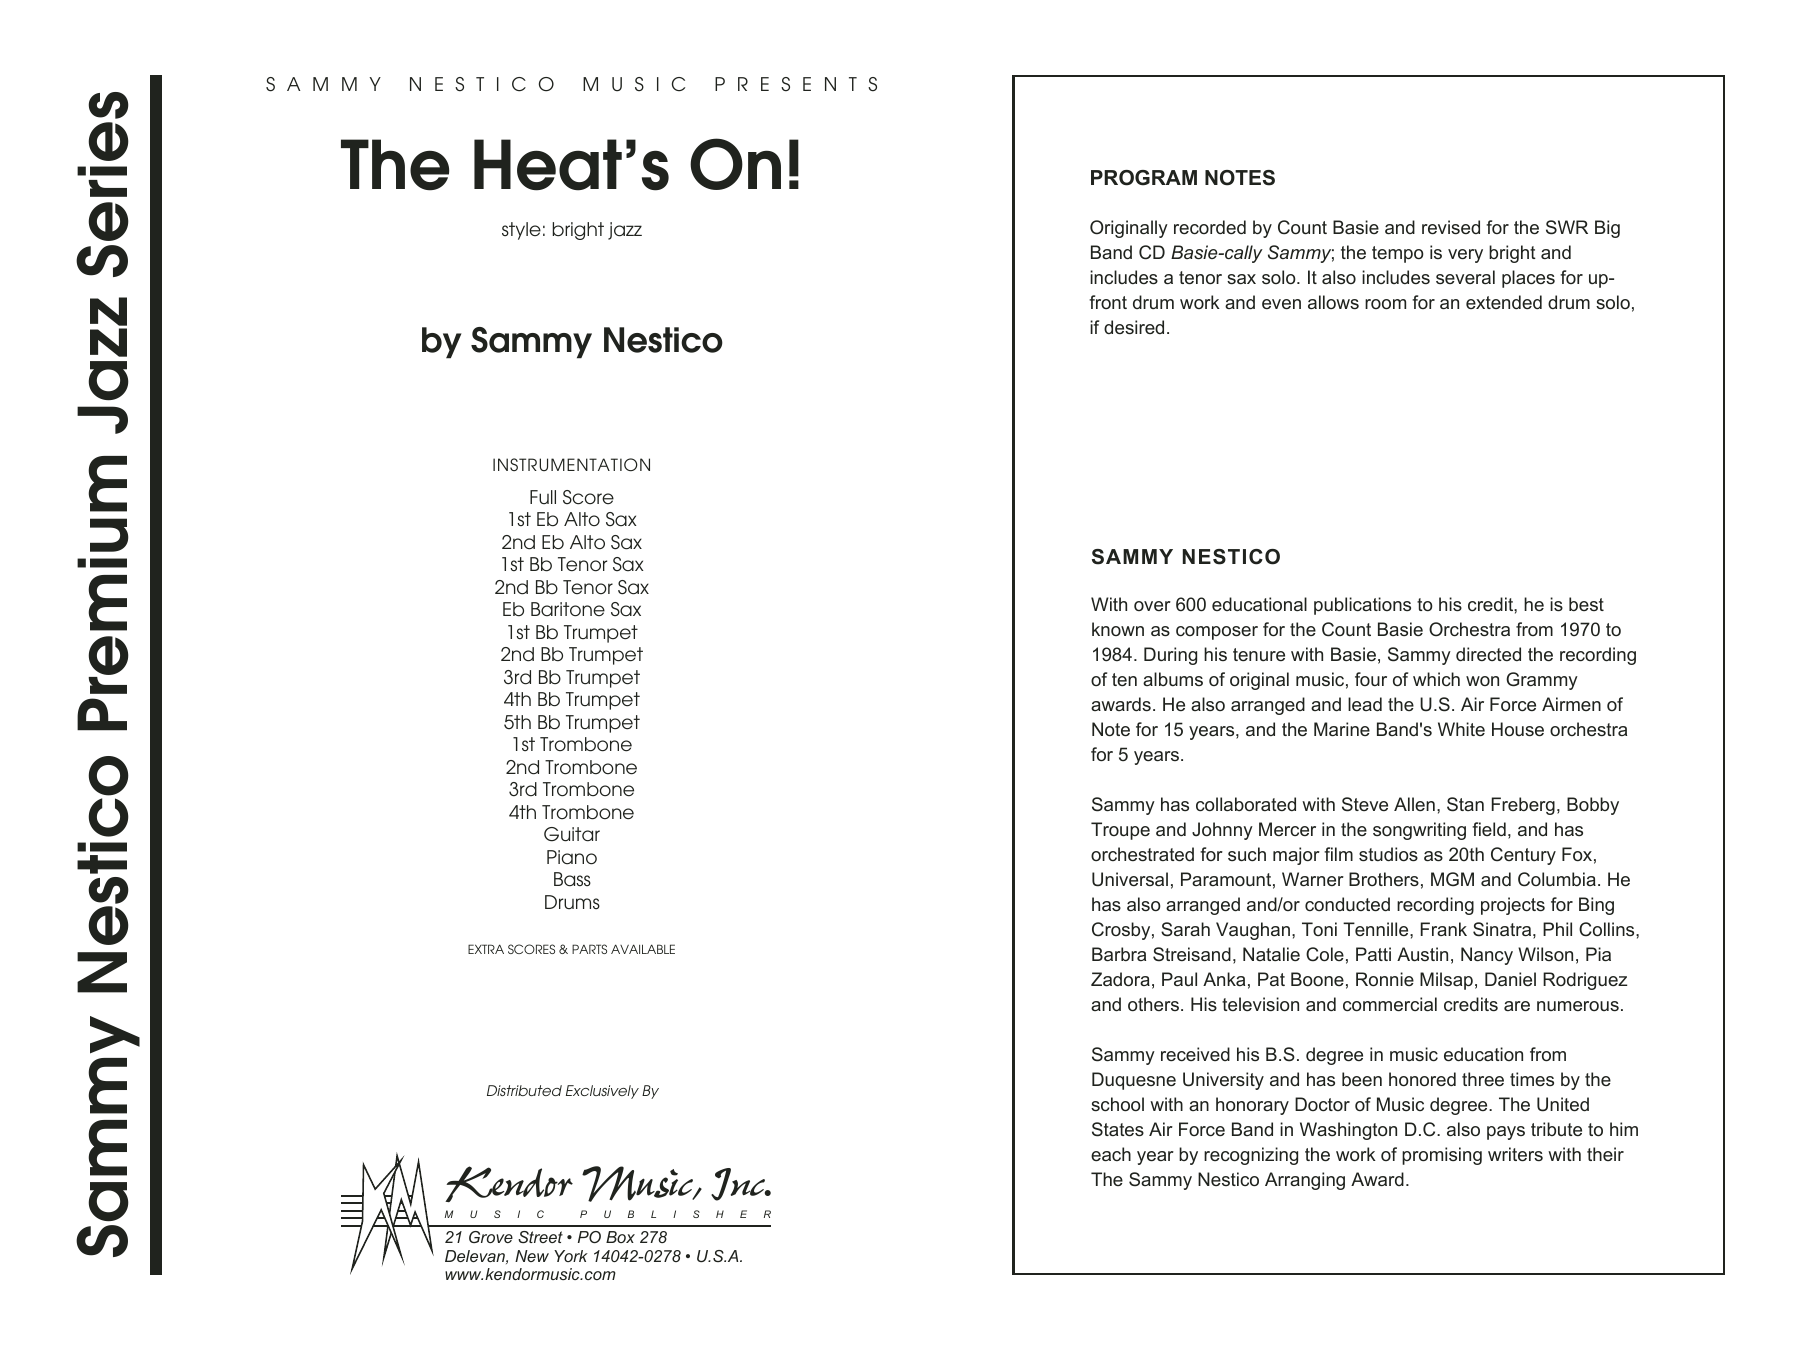 The Heat's On - Full Score Sheet Music